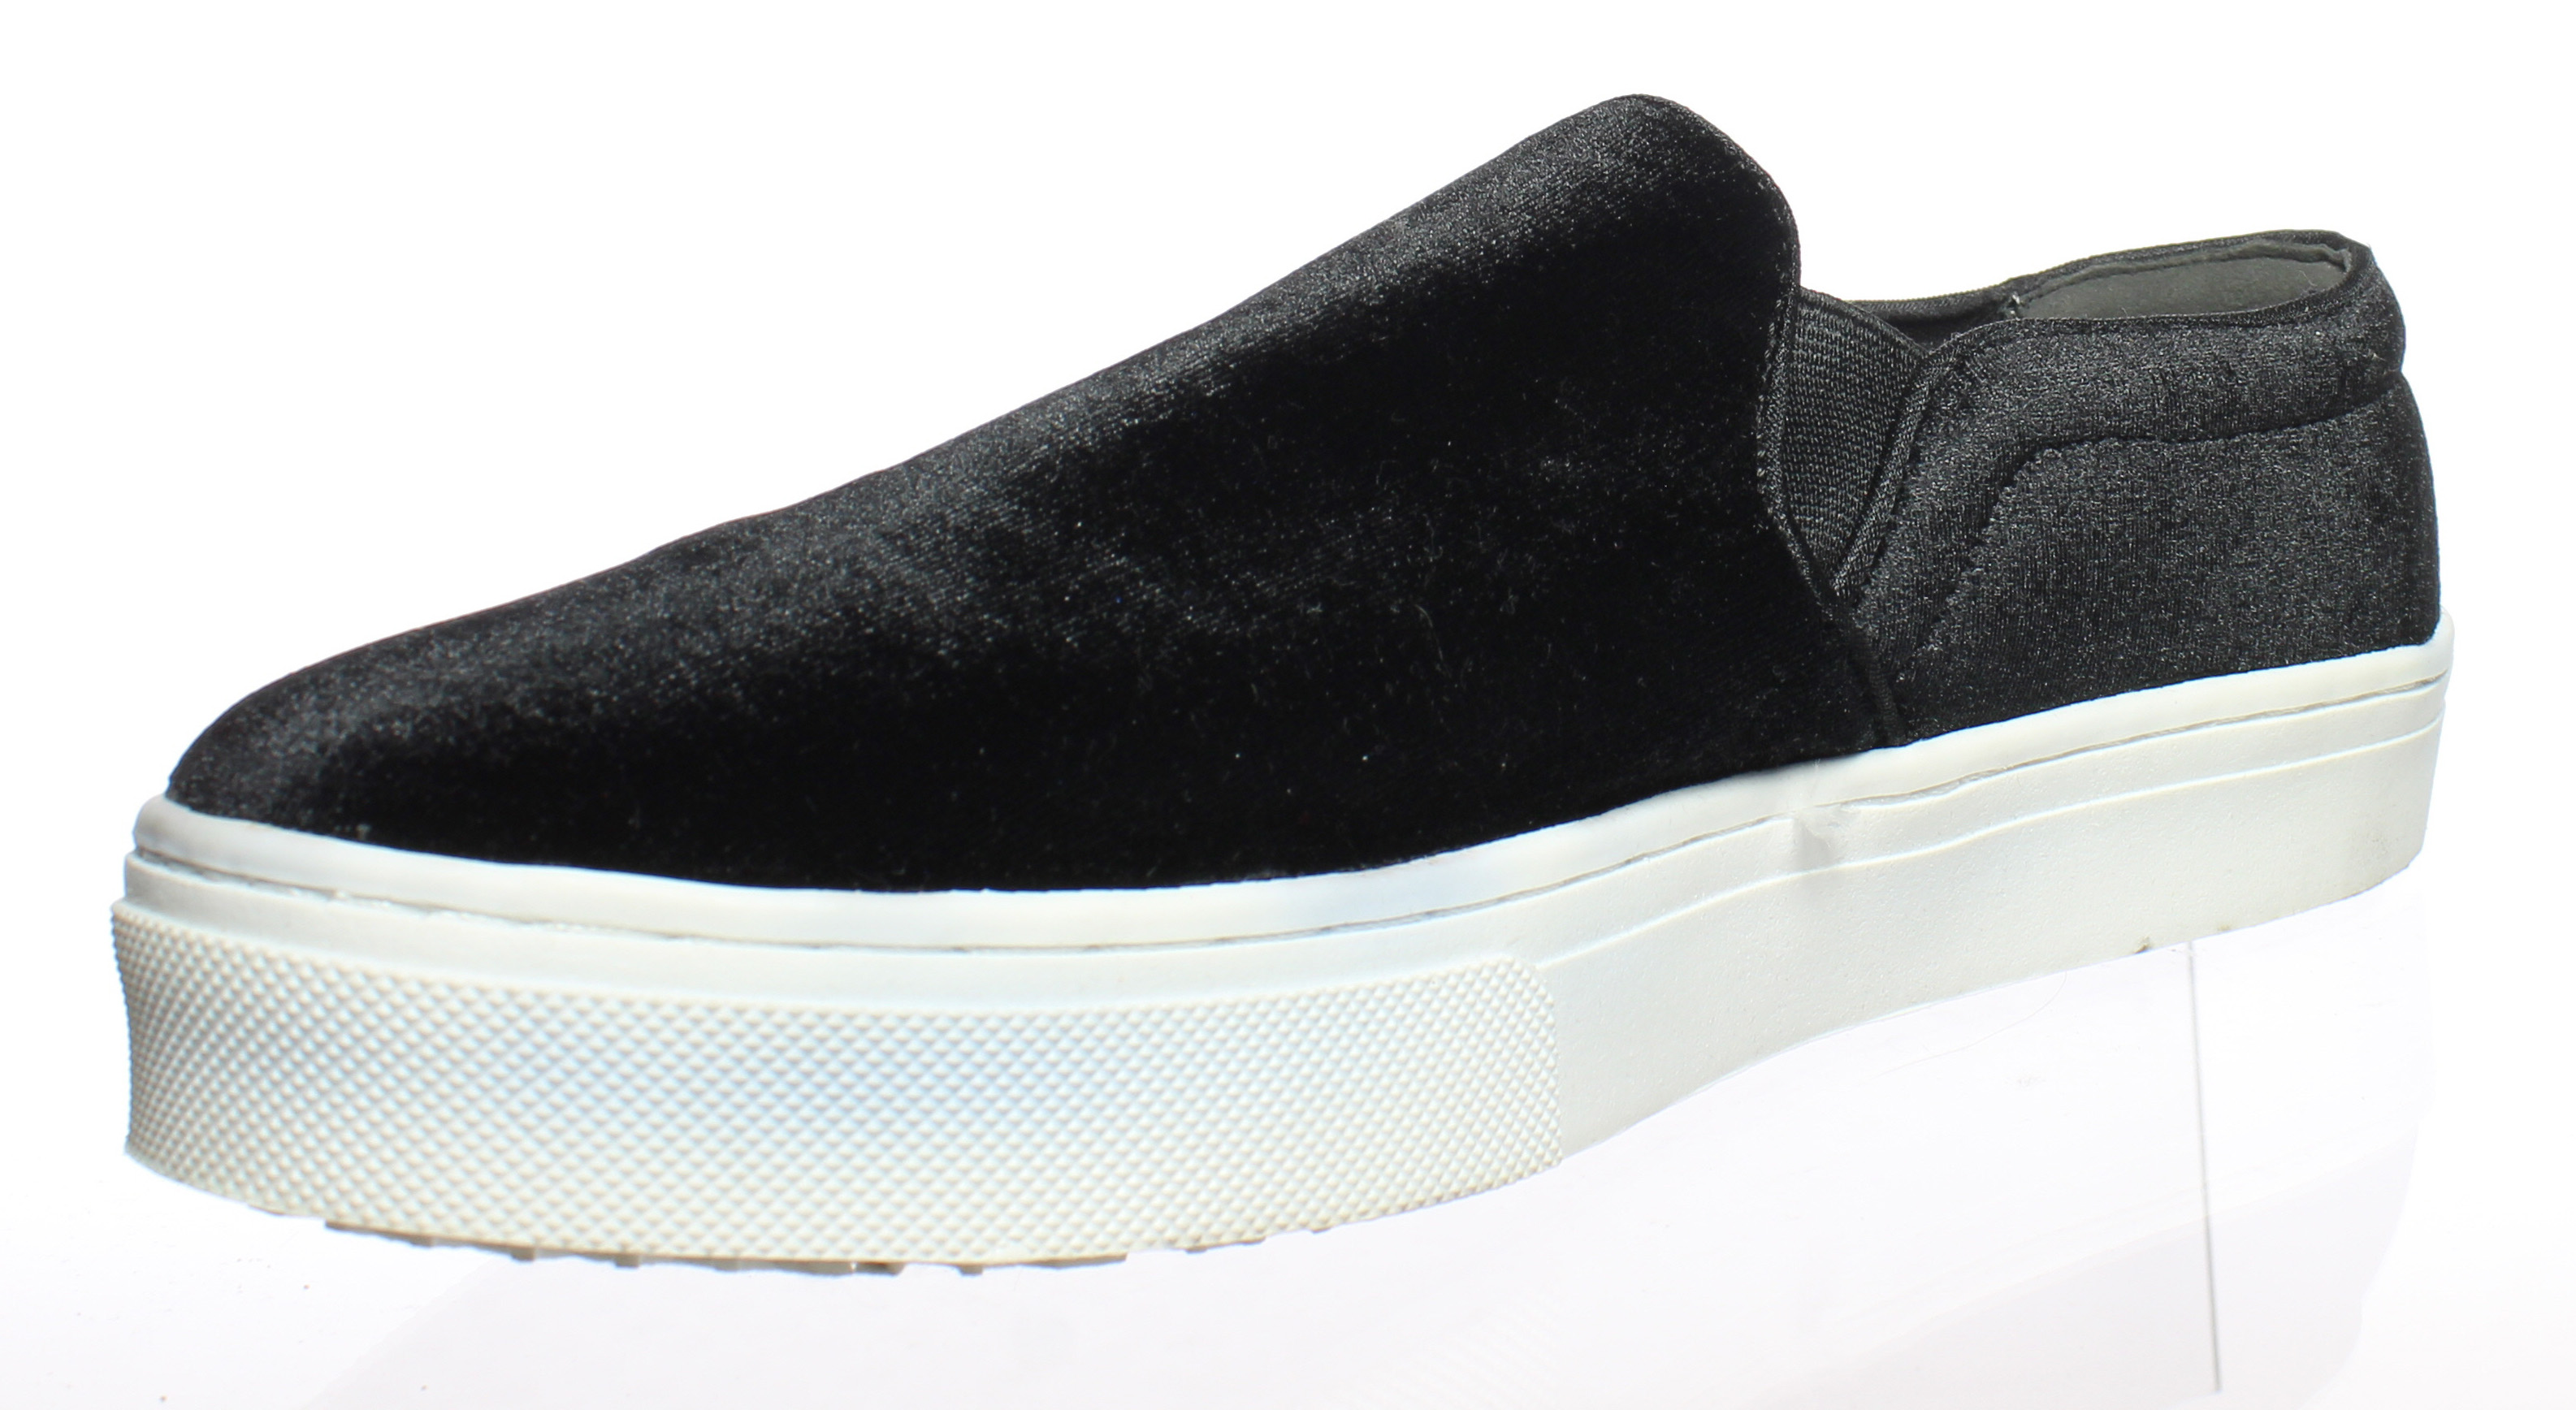 21e6fbf0b0ac Sam Edelman Womens Lacey Fashion Sneaker Black Velvet 10 M US. Be the first  to write a review. About this product. Picture 1 of 4  Picture 2 of 4 ...